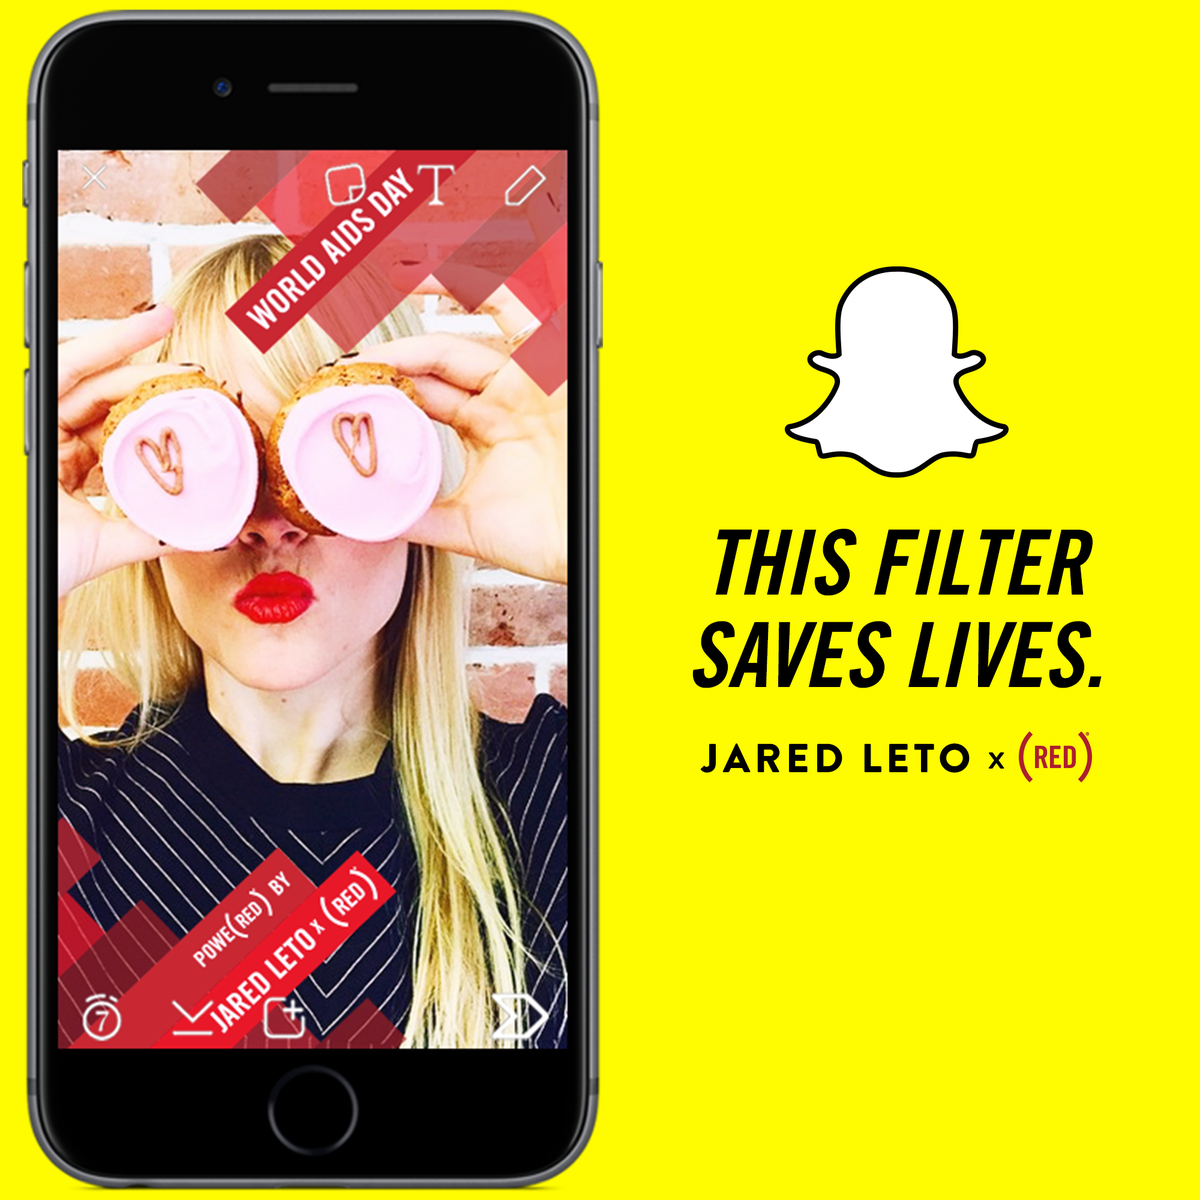 RT @RED: THIS FILTER SAVE LIVES! Use @JaredLeto's @RED filter on @Snapchat today & @GatesFoundation donates $3 up to $3MM! https://t.co/dKN…